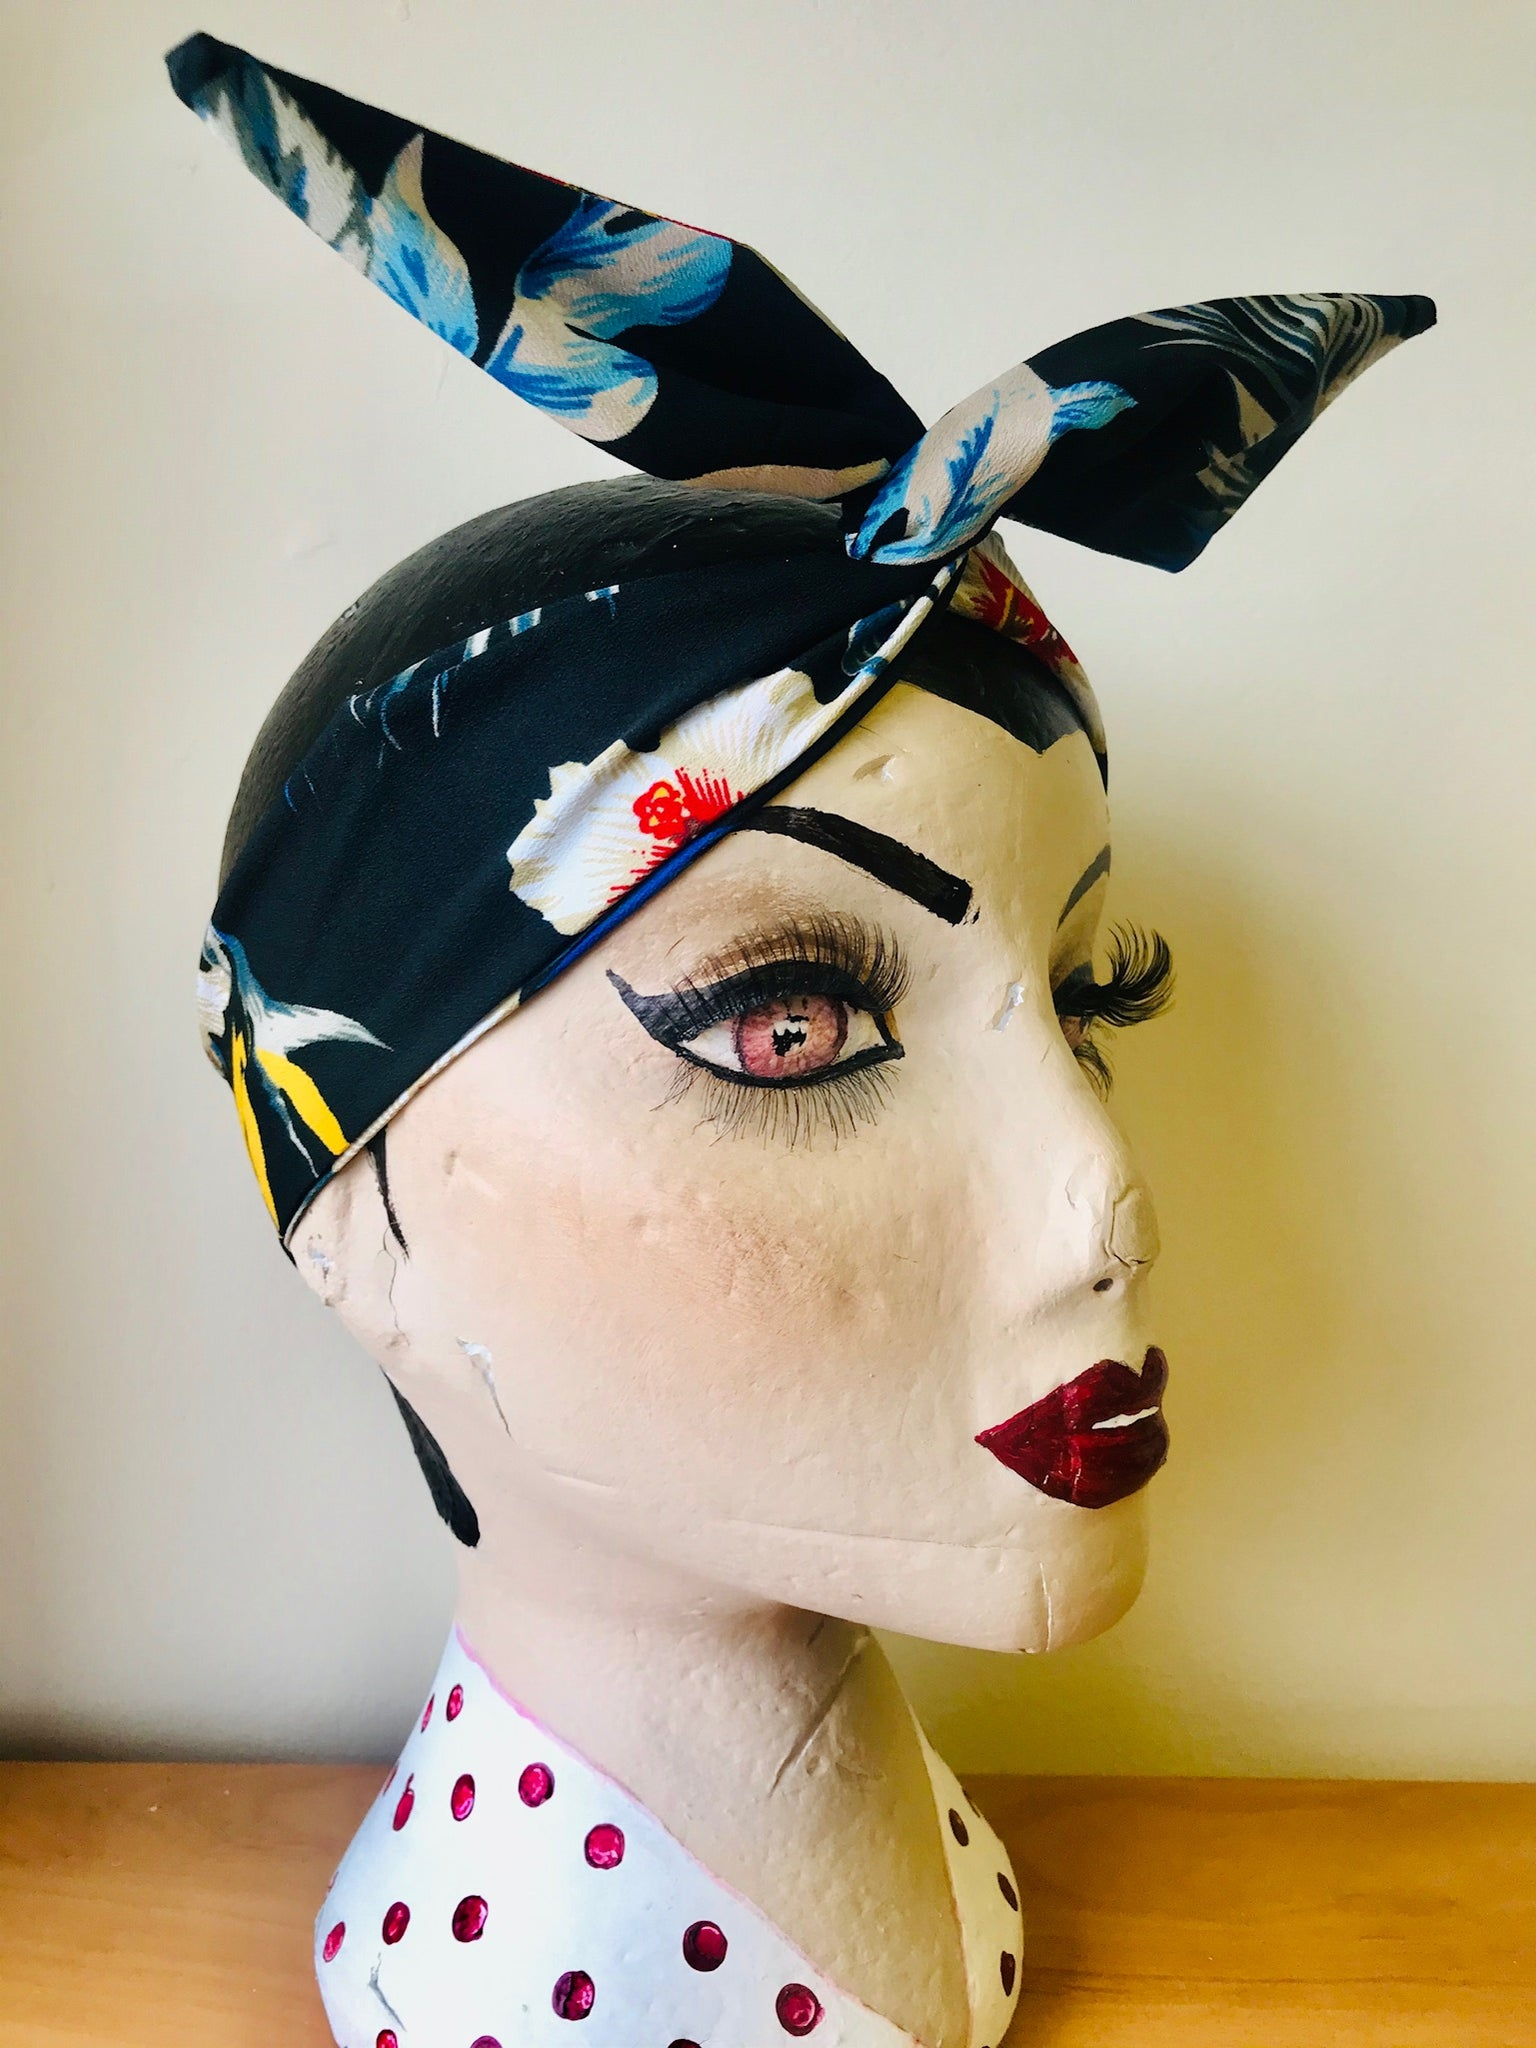 Twist & Go .. Wired Headband (No Tying Fiddly Knots or Bows) 1950s Rockabilly / 1940s Landgirl Style .. In Our Black Hawaiian Print - RocknRomance True 1940s & 1950s Vintage Style